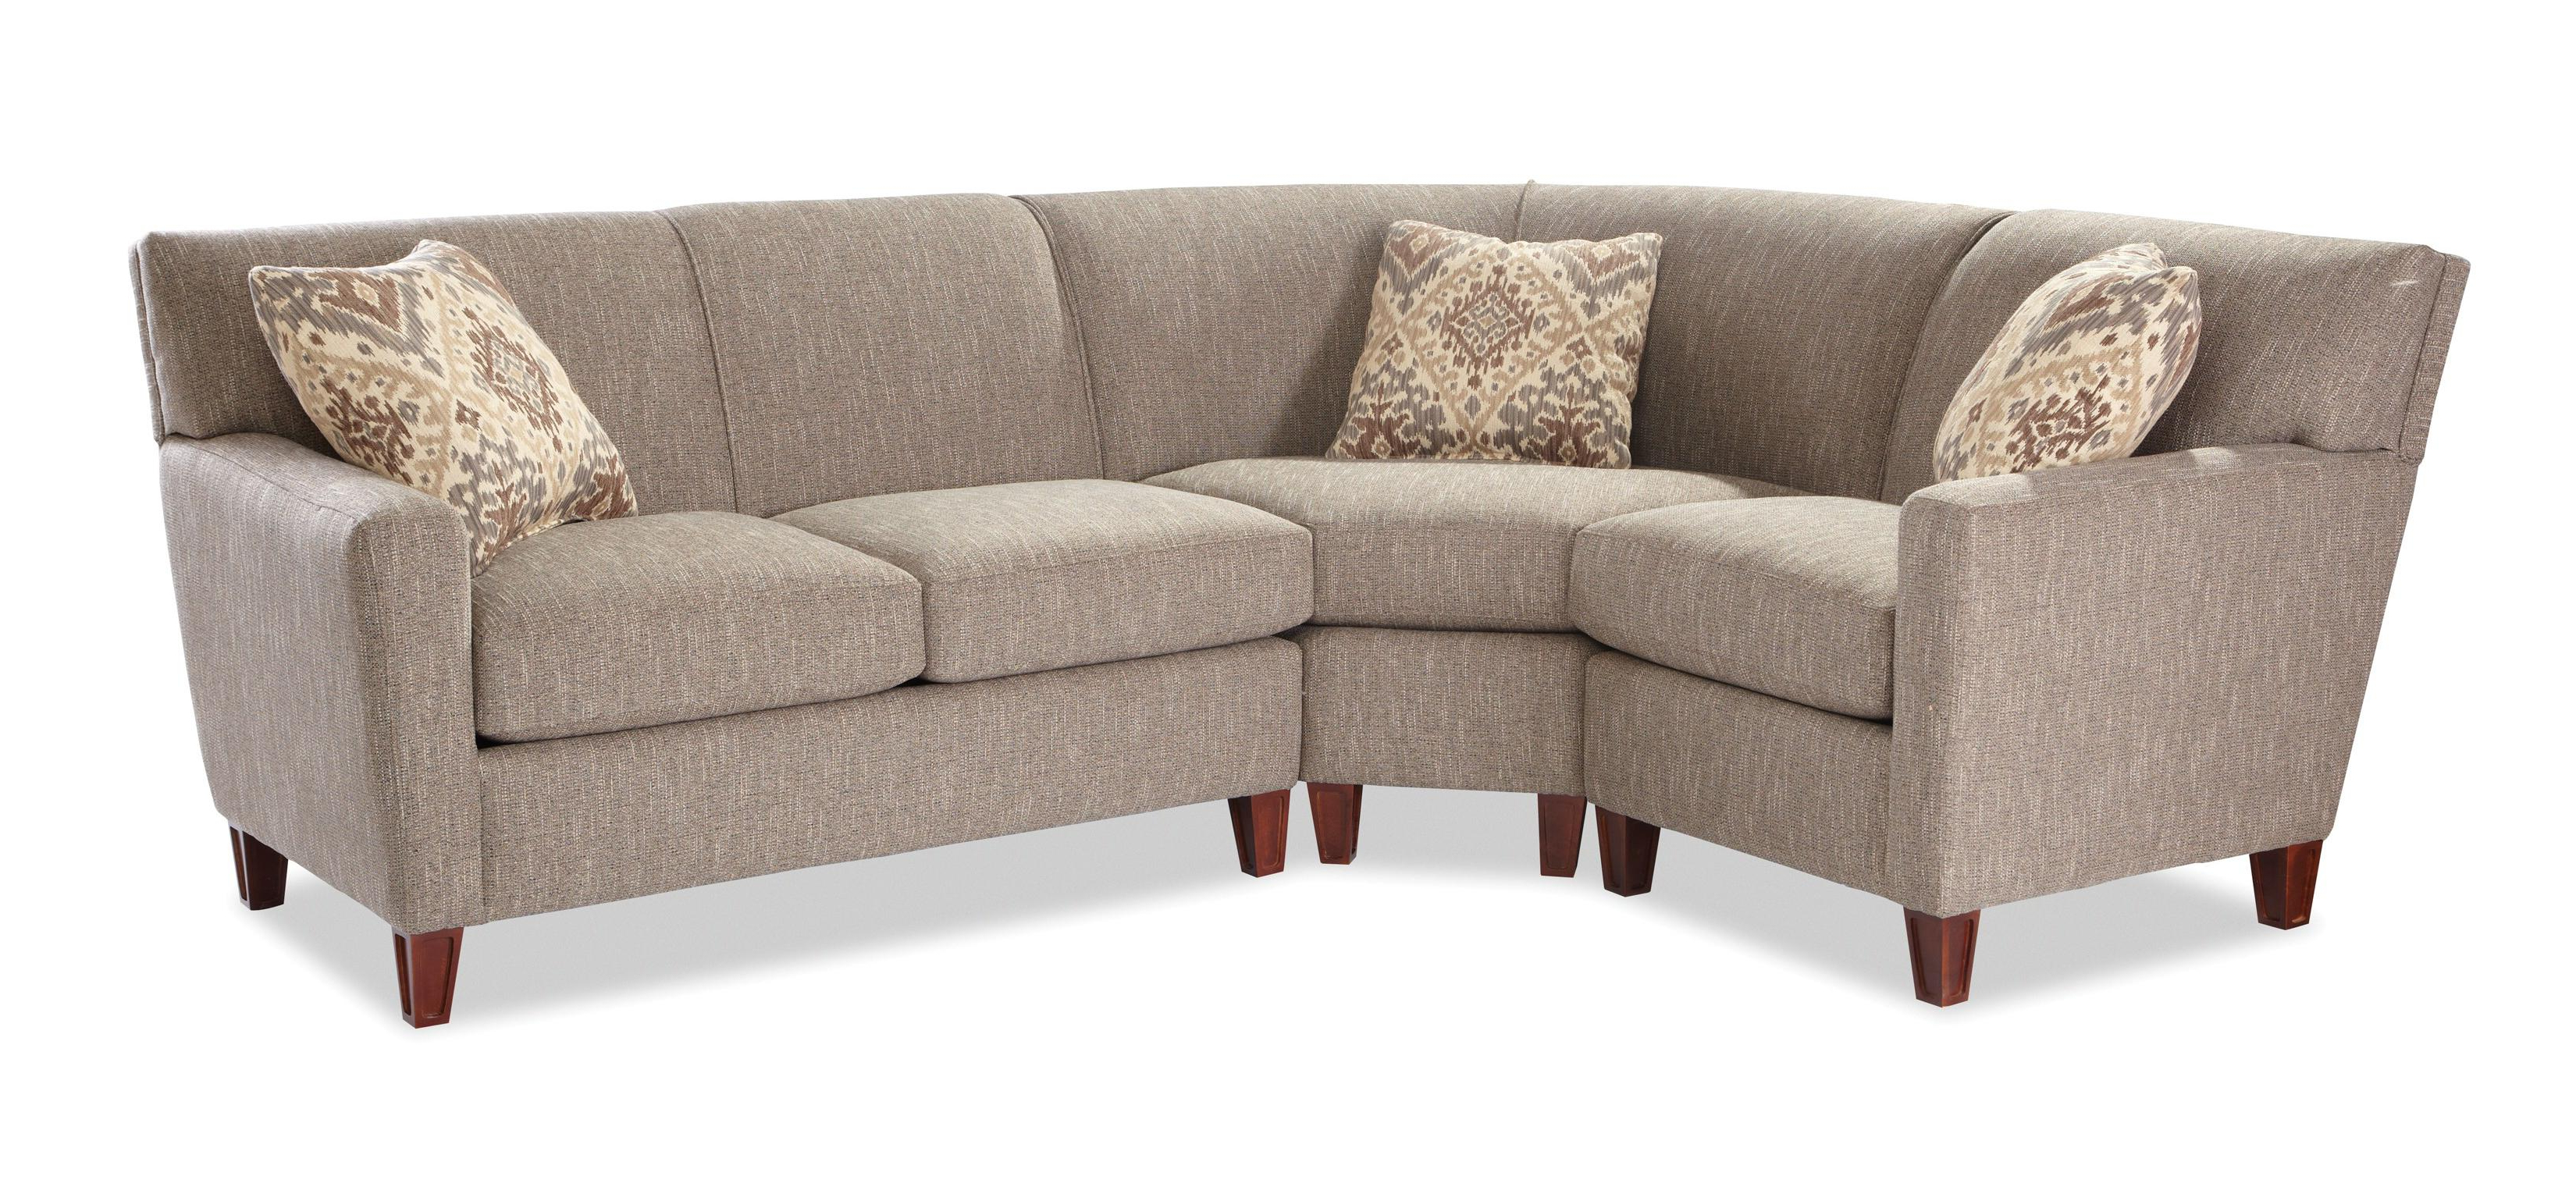 Recent Craftmaster 7864 Three Piece Sectional Sofa With Raf Loveseat For Josephine 2 Piece Sectionals With Laf Sofa (Gallery 16 of 20)